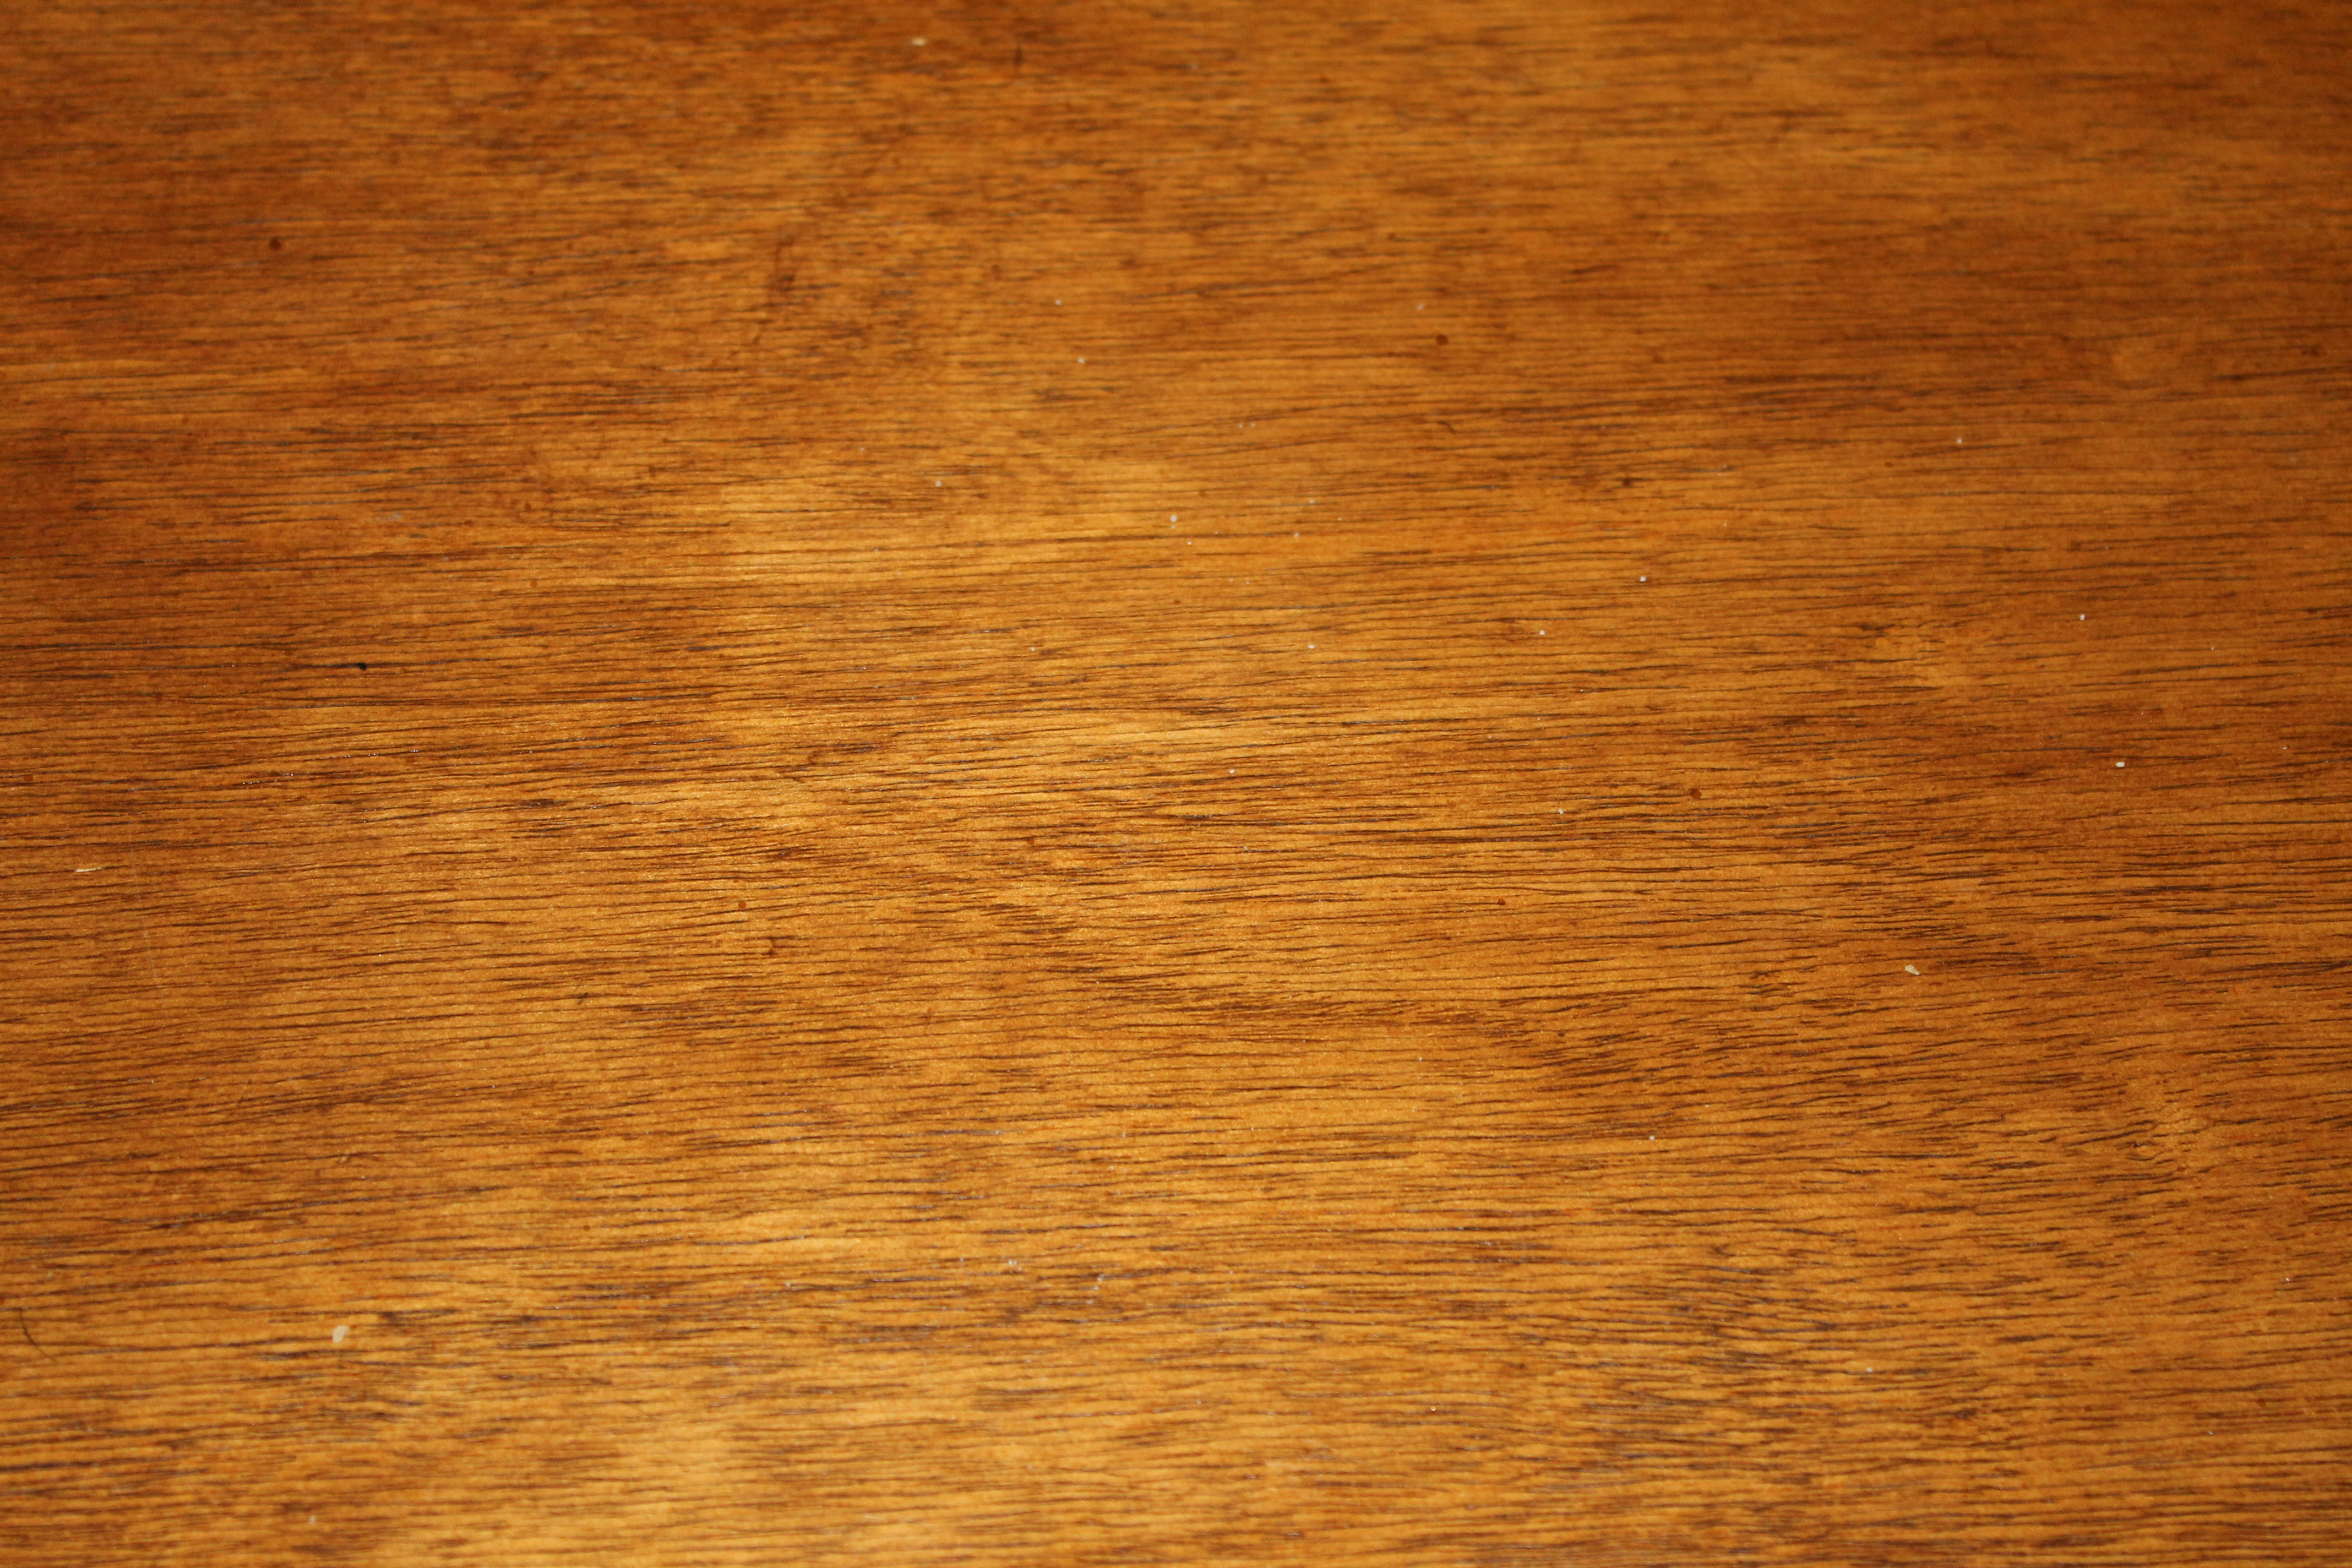 Polished Woodgrain Table Light Wood 1 By Caritarian On Deviantart